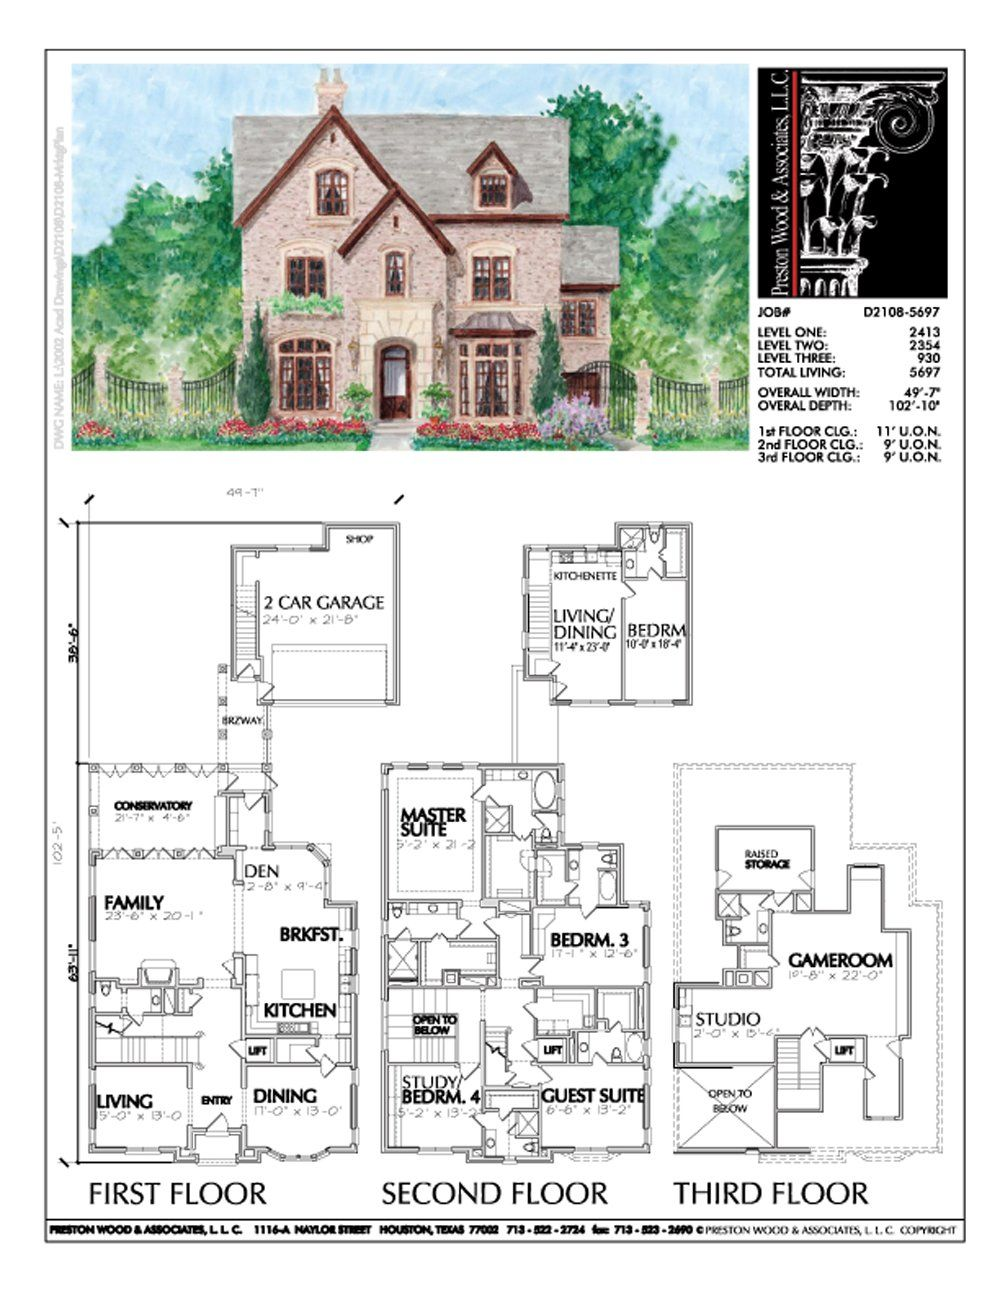 Luxury Home Photos New Custom Homes With Swimming Pool 2 Story Floor Preston Wood Associates Luxury House Plans Custom Home Plans House Plans